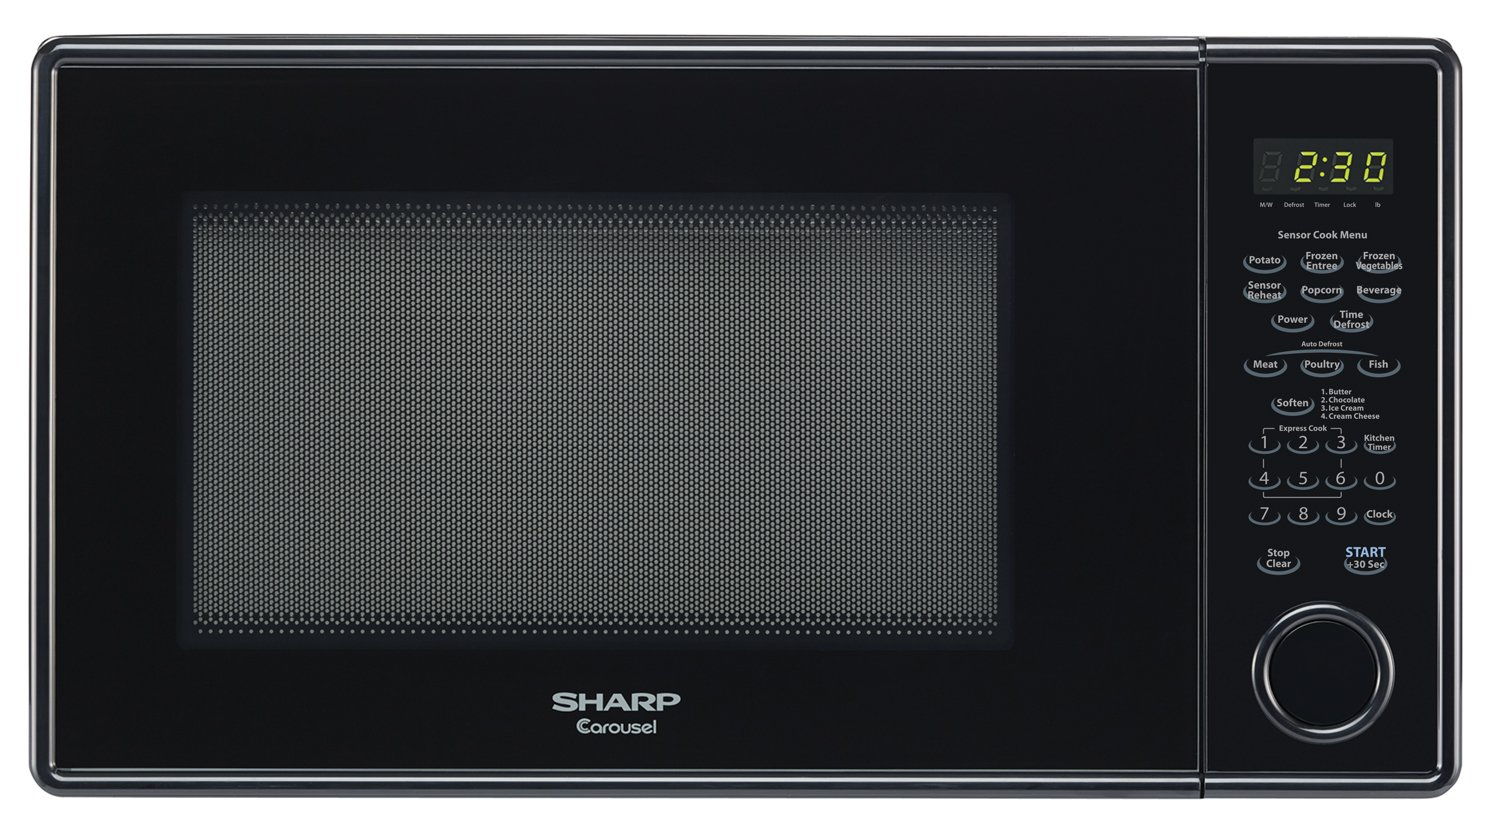 Sharp Microwaves ZSMC1441CB Sharp 1,000W Countertop Microwave Oven, 1.4 Cubic Foot, Black